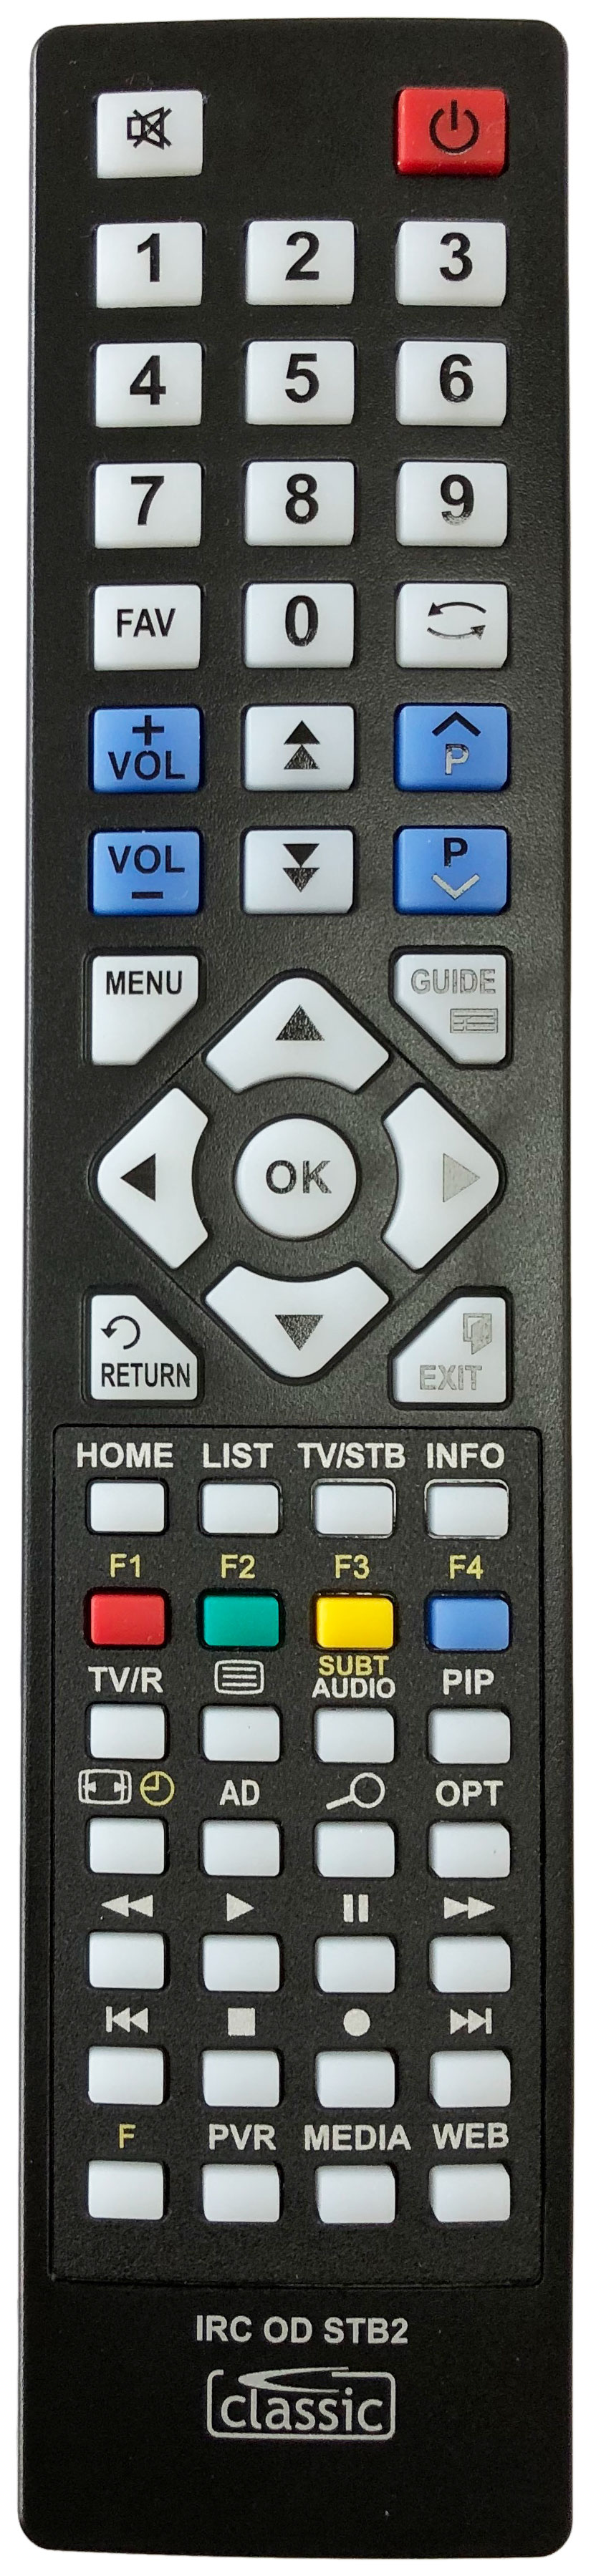 Technomate TM-5000 HD Remote Control